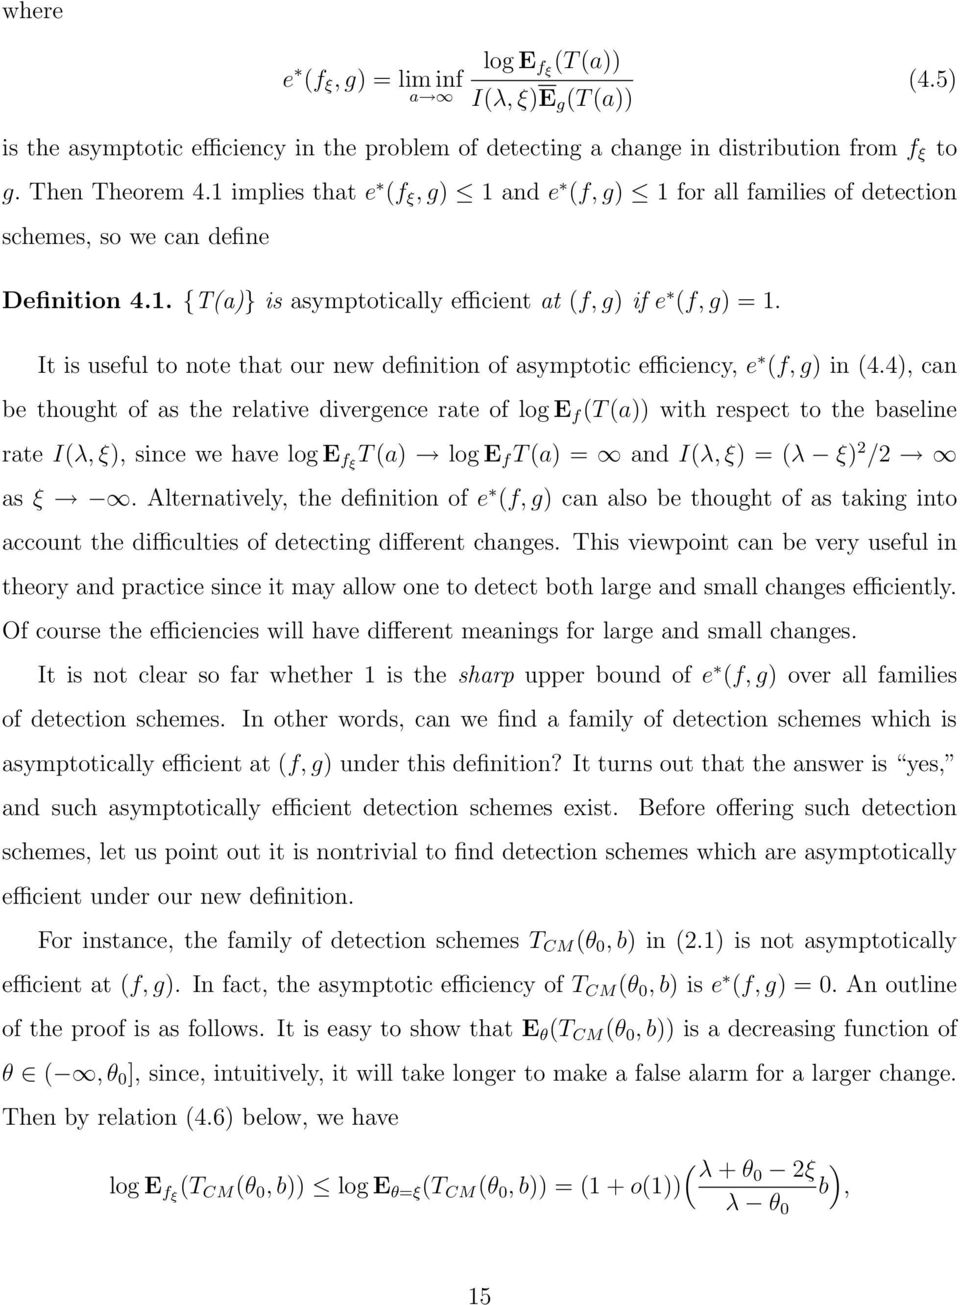 It is useful to note that our new definition of asymptotic efficiency, e (f, g) in (4.